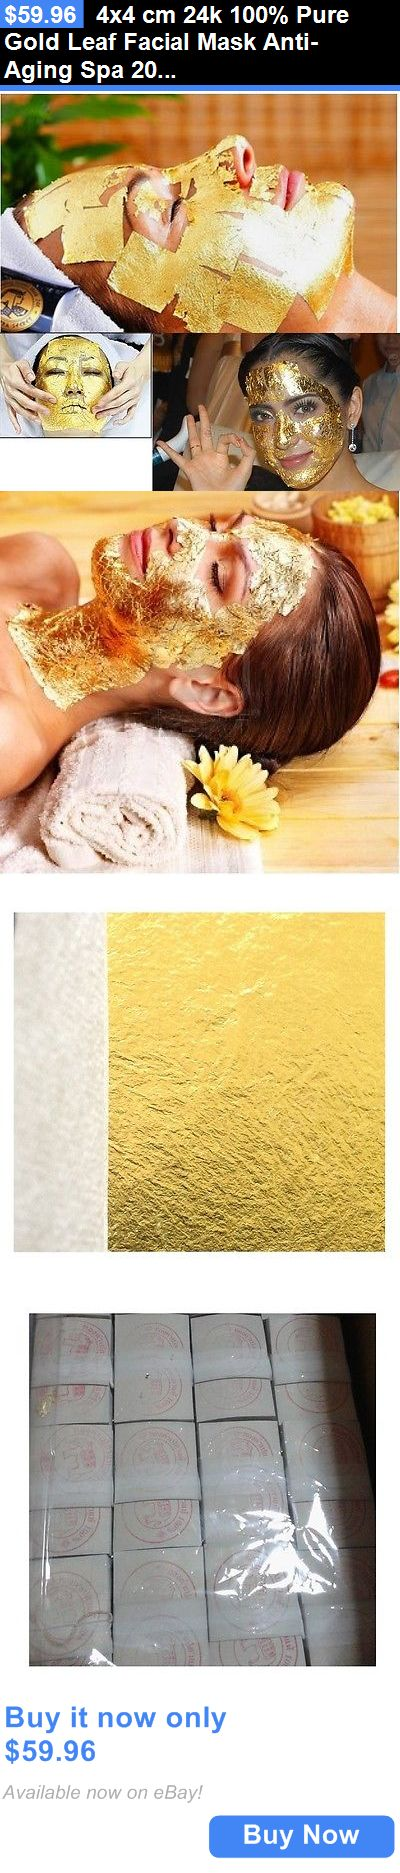 wholesale Skin Care: 4X4 Cm 24K 100% Pure Gold Leaf Facial Mask Anti-Aging Spa 200 Sheets BUY IT NOW ONLY: $59.96